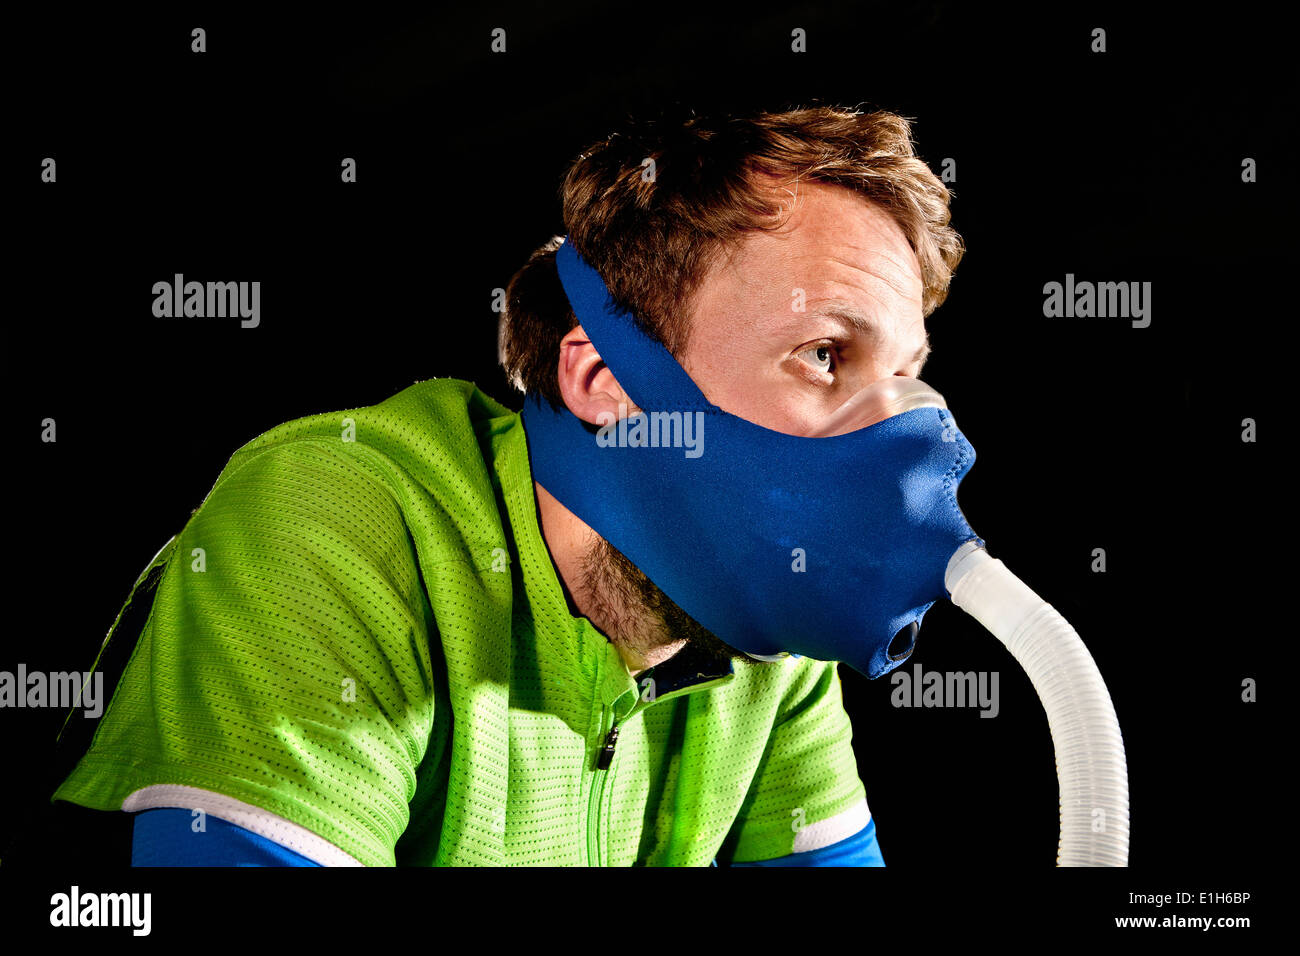 Close up of young man in face mask on gym exercise cycle in altitude centre - Stock Image